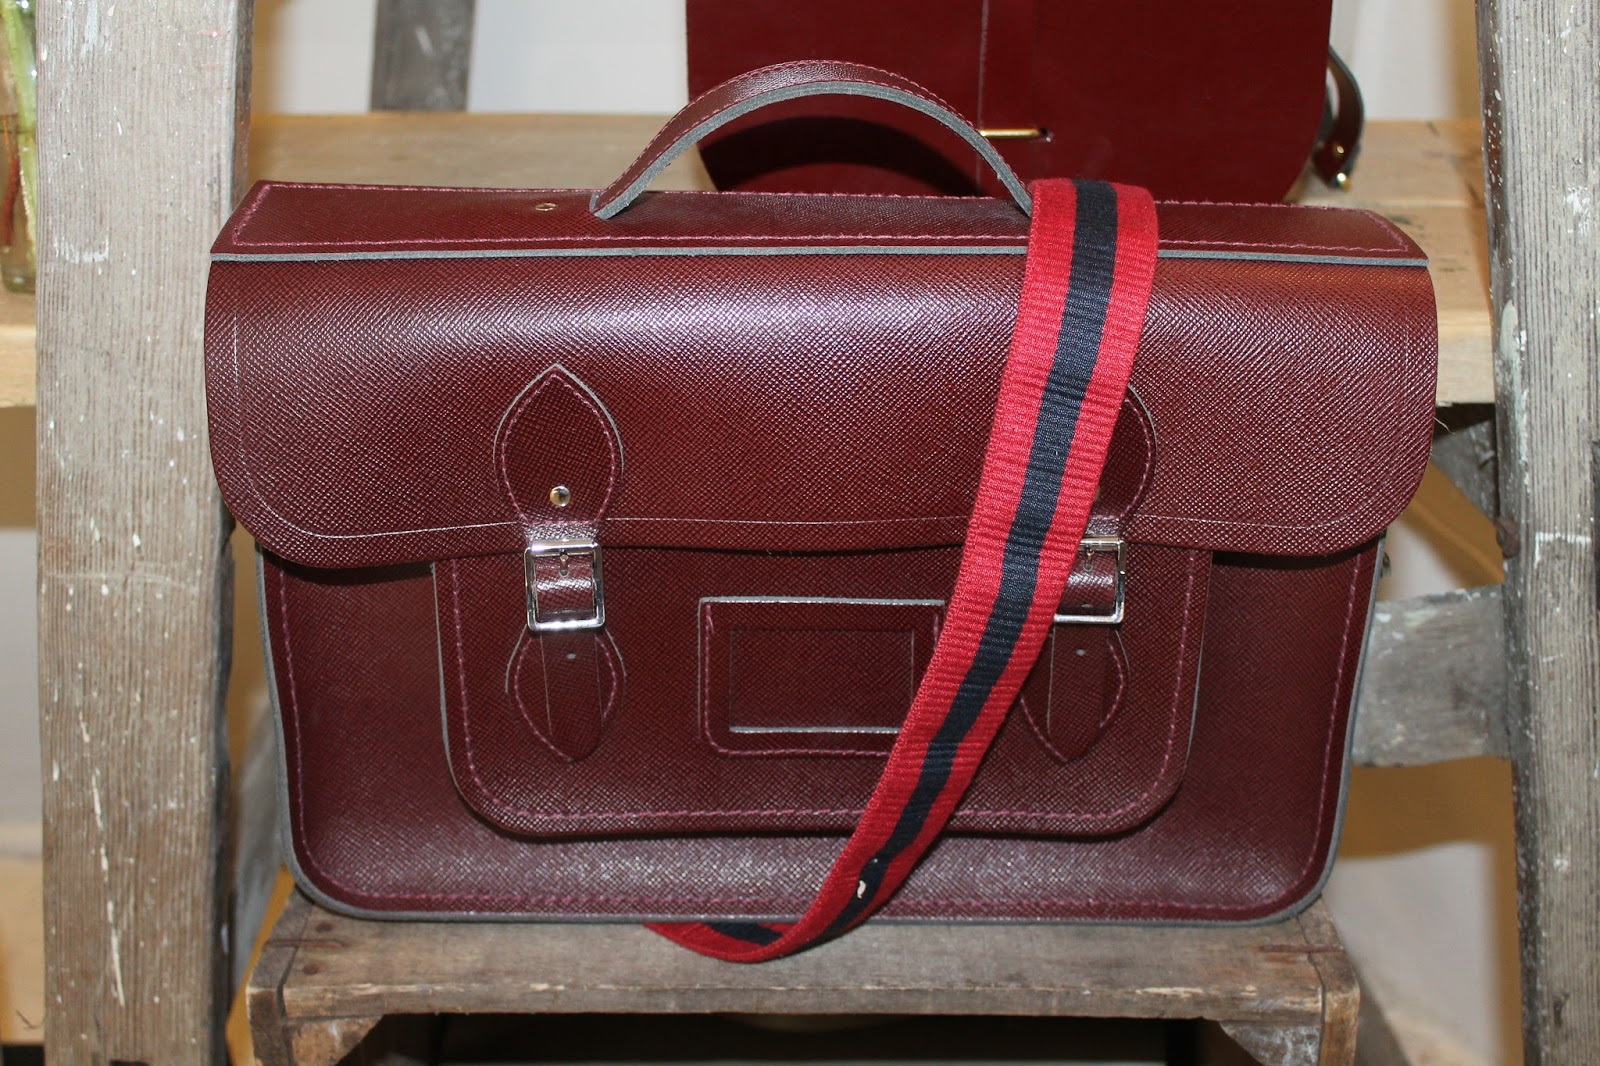 c55adc5bb4  In Store  I love the classic design of The Cambridge Satchel Company bags.  They are exactly like my school bag when I was at primary school.